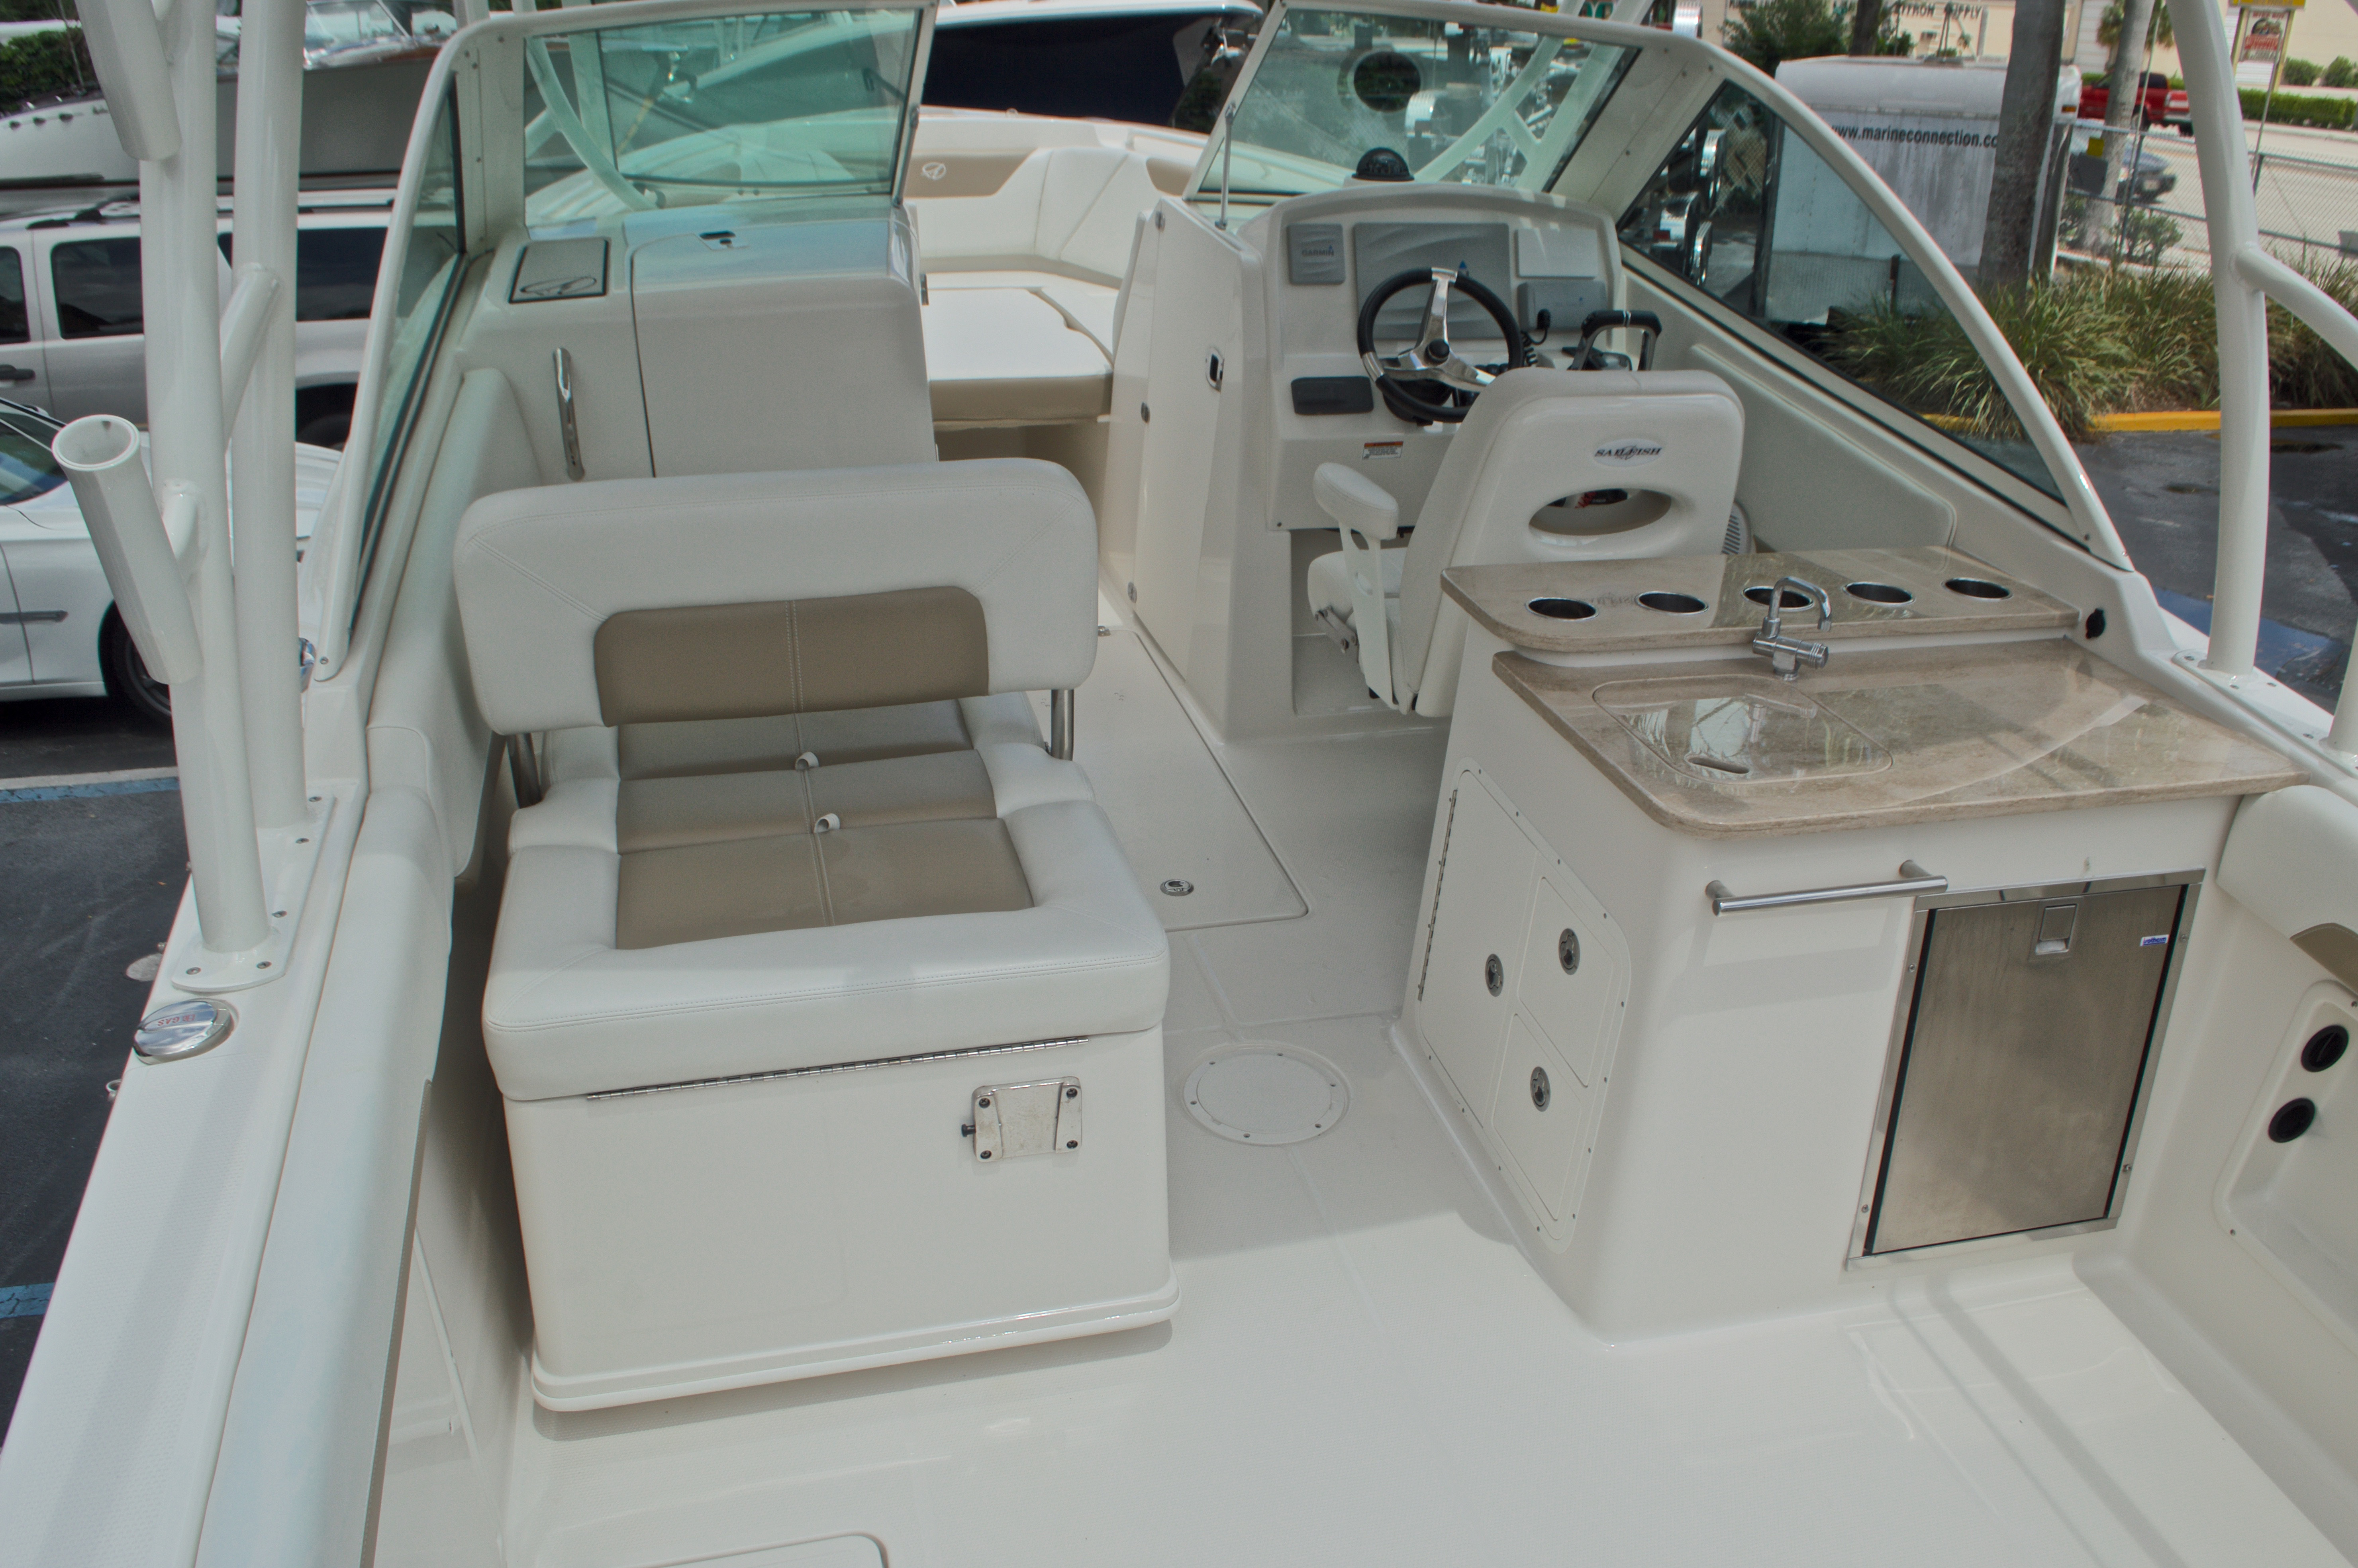 Thumbnail 10 for Used 2016 Sailfish 275 Dual Console boat for sale in West Palm Beach, FL